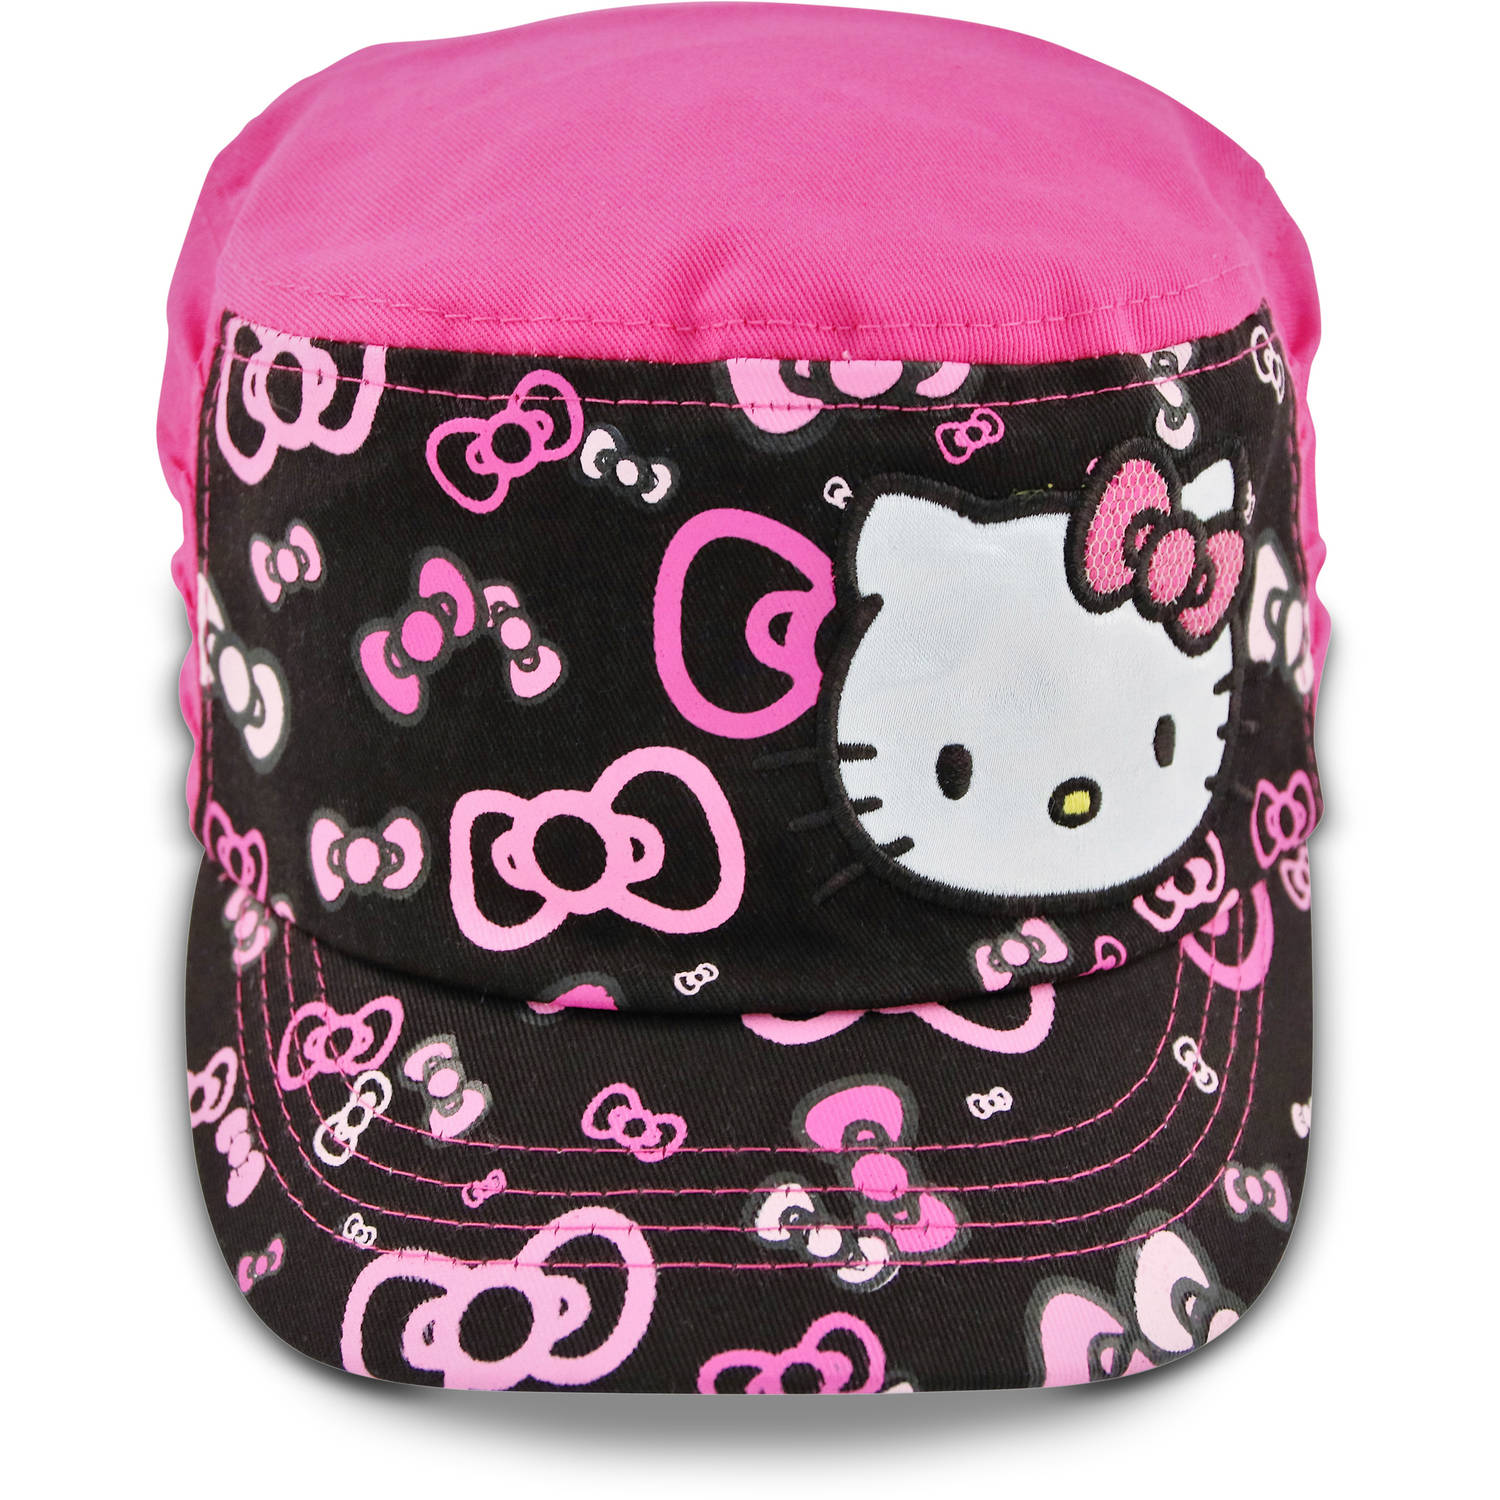 Little Girls Hello Kitty Cadet with Satin Character Patch, Age 4-7